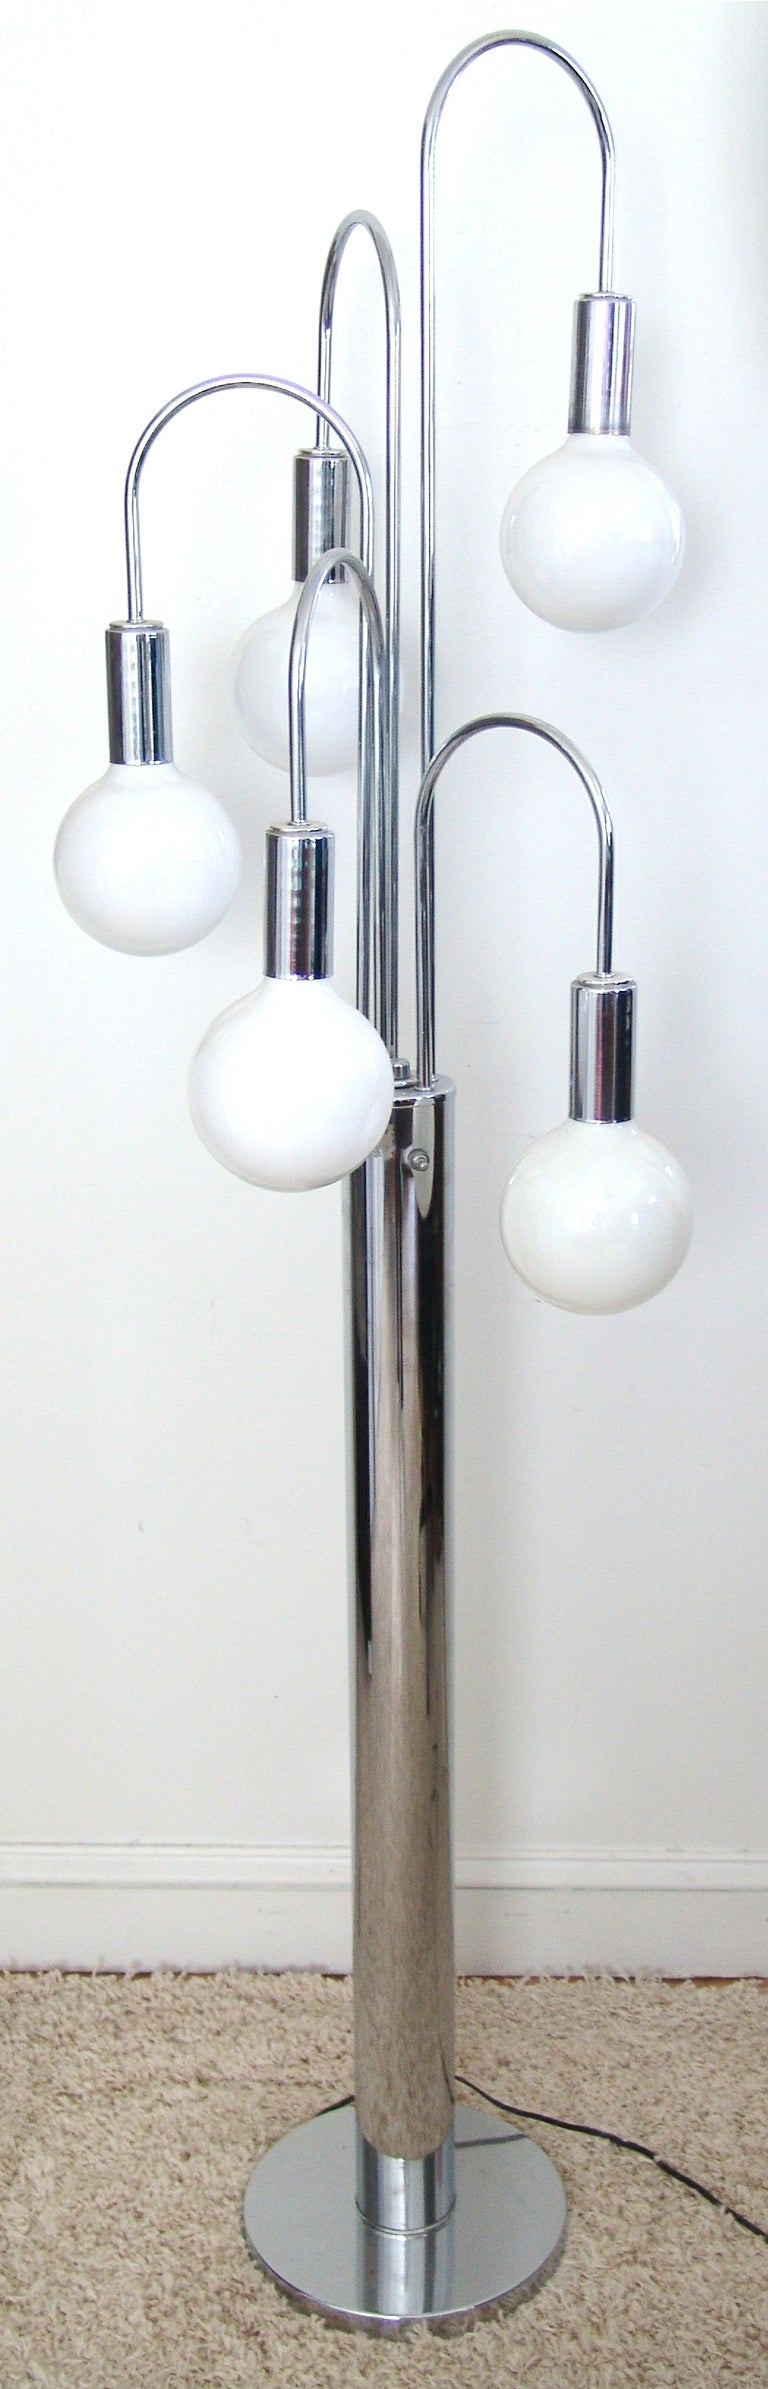 Mid-Century Modern Chrome Floor Spider Lamp For Sale at 1stdibs